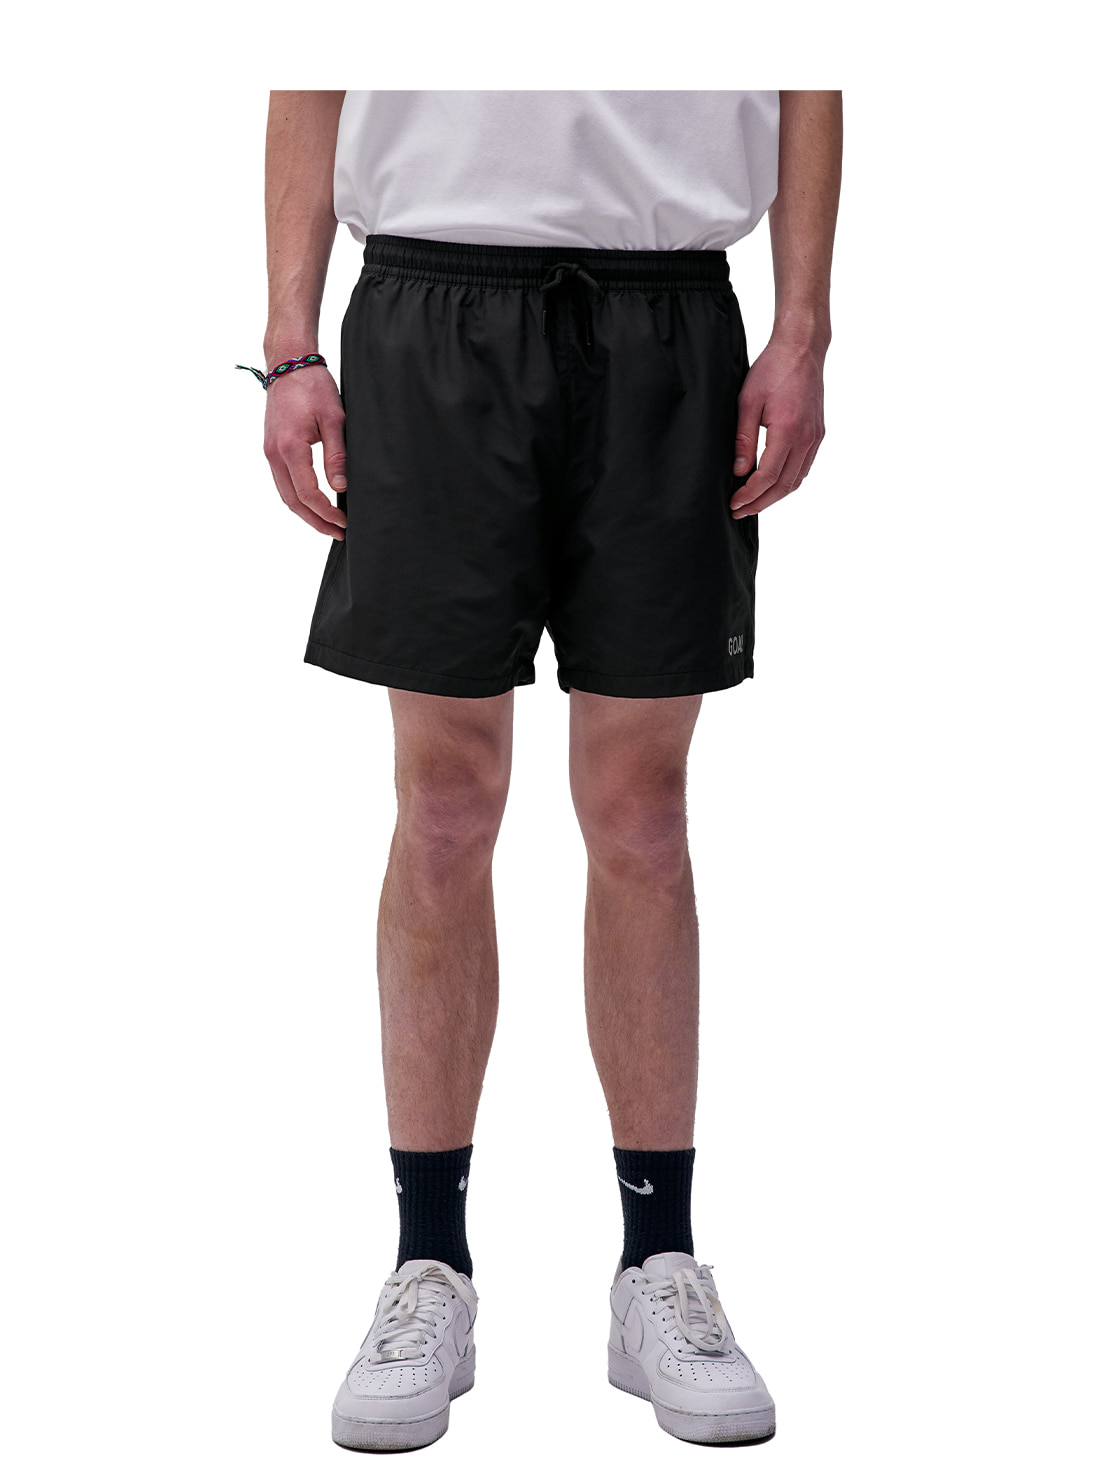 SOLID WOVEN SHORTS - BLACK